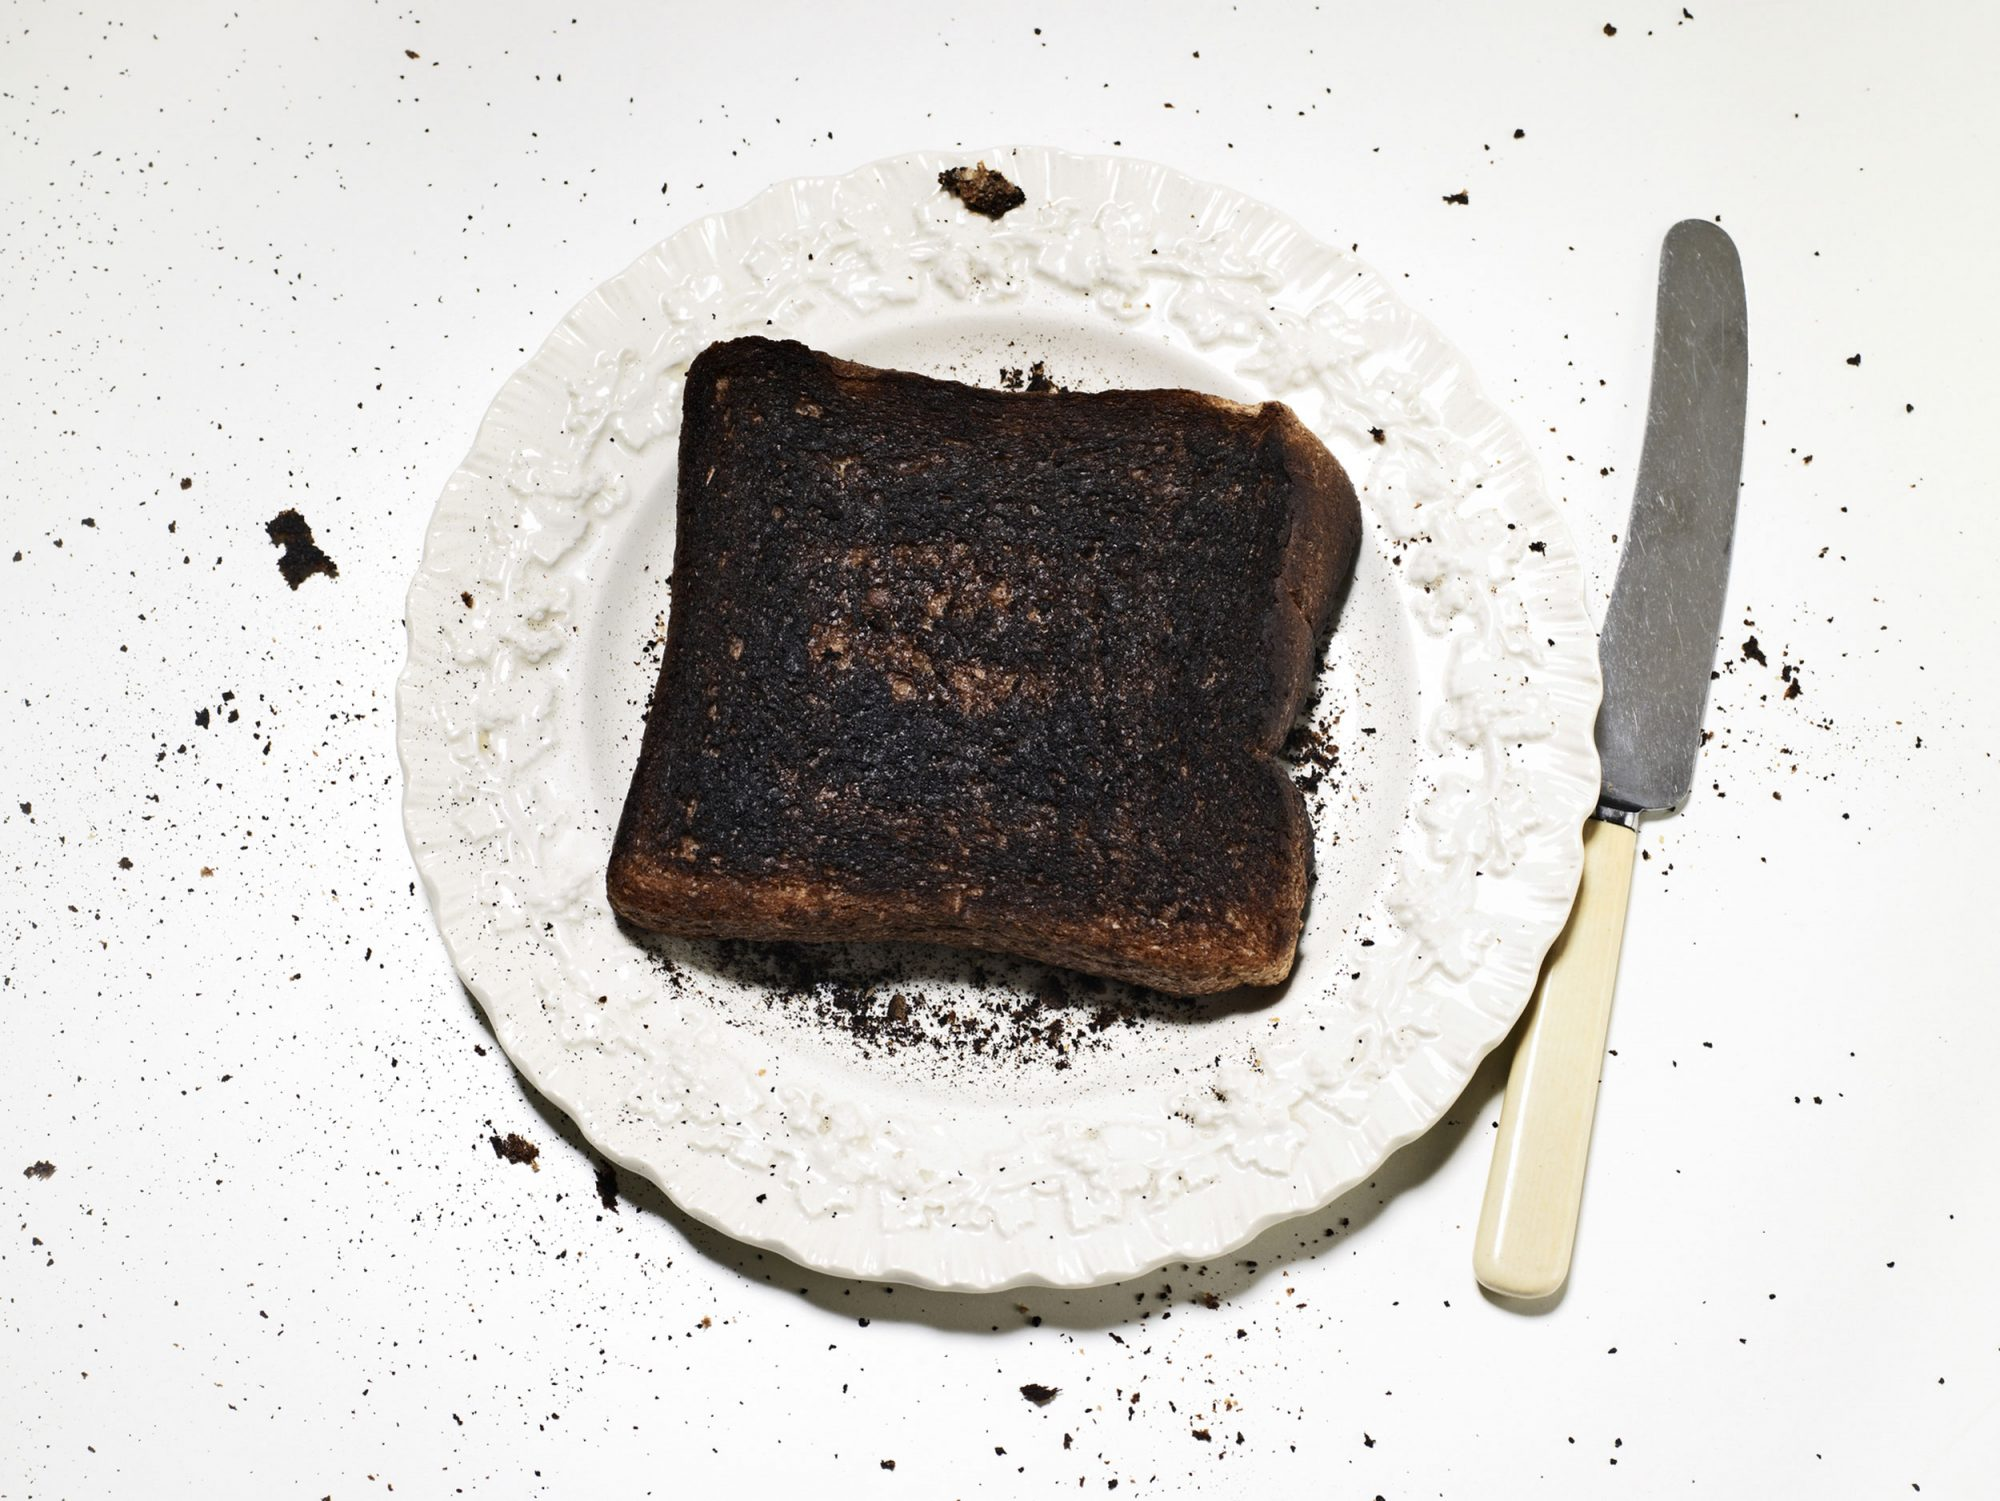 EC: You Can't Patent Toast